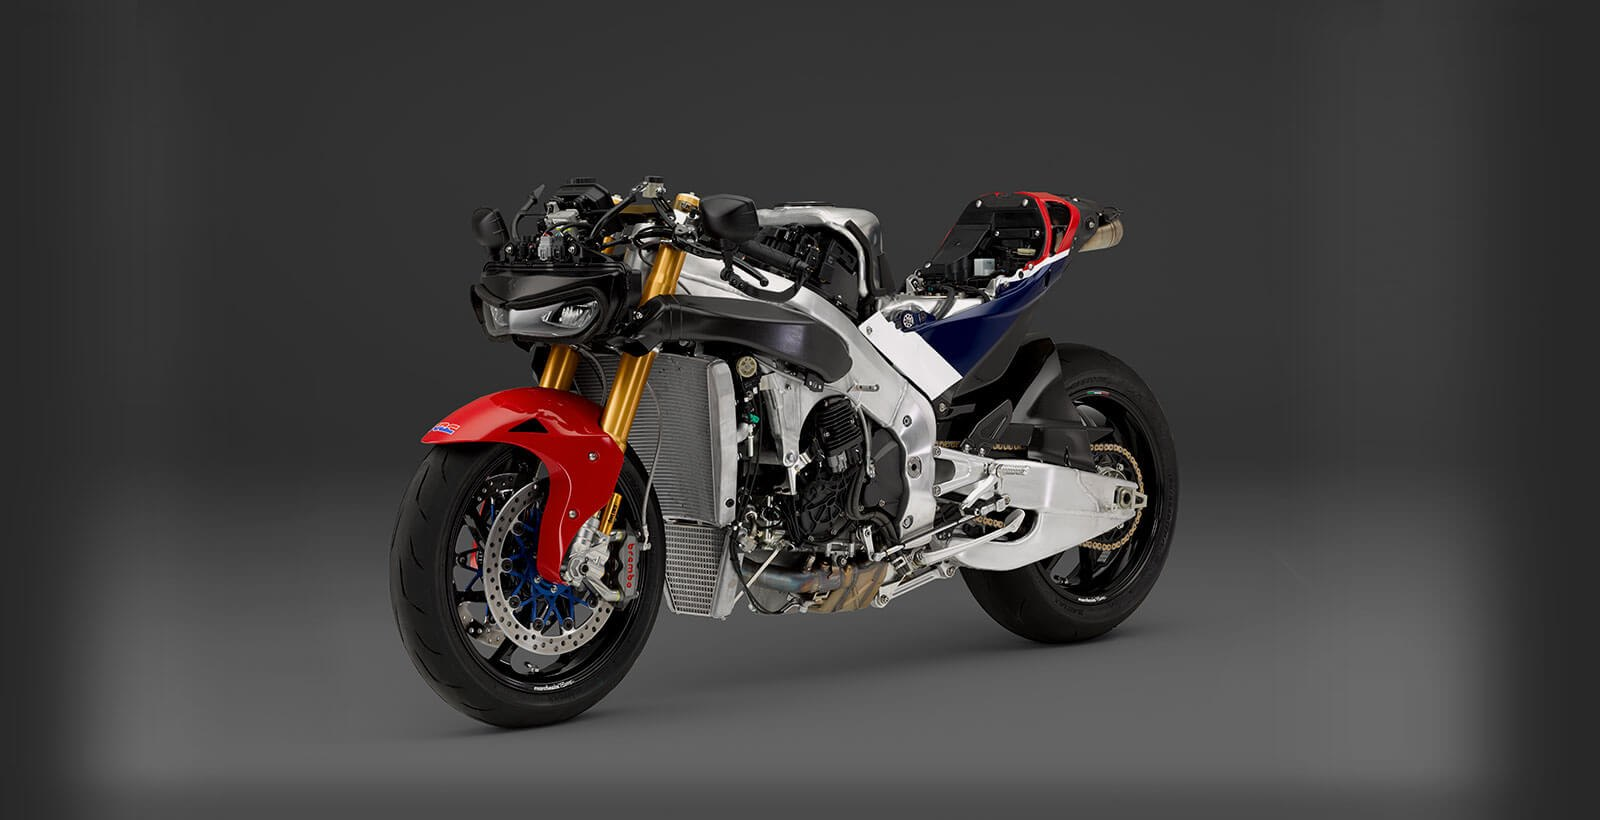 Honda RC213V-S naked